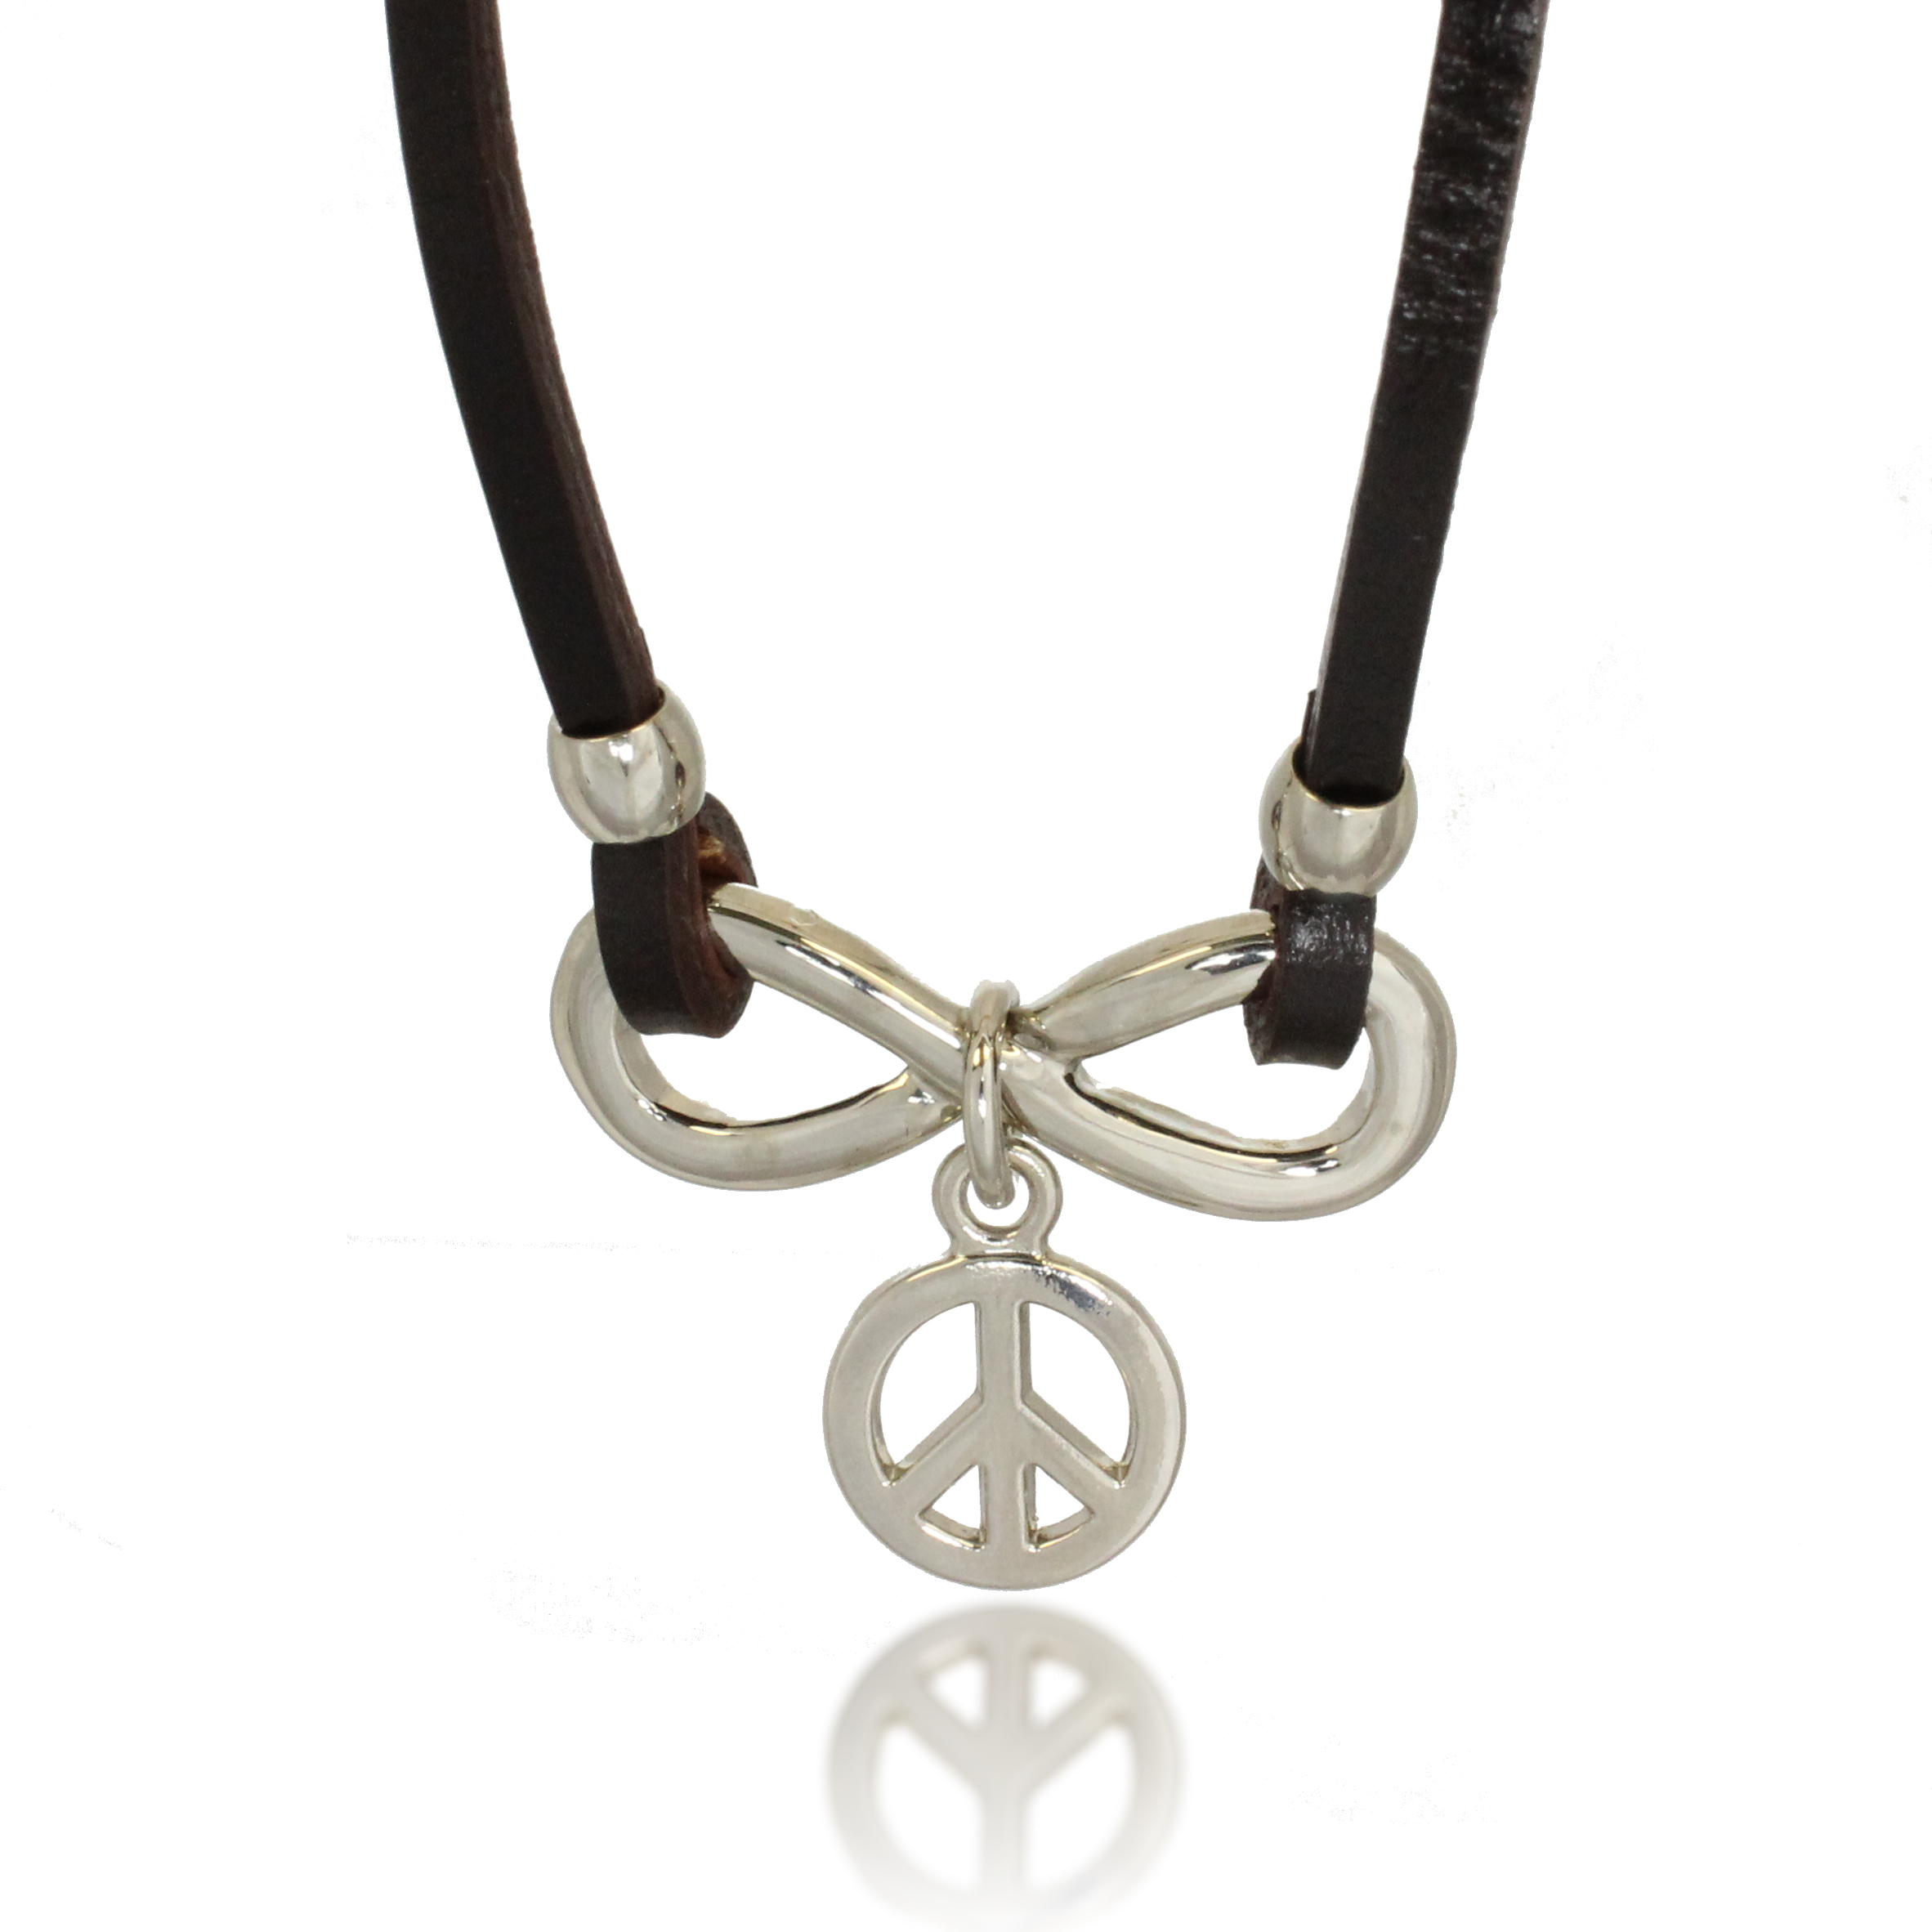 Stainless Steel and Dark Brown Leather Horizonal Infinity Peace Charm Pendant Necklace, 20 inches